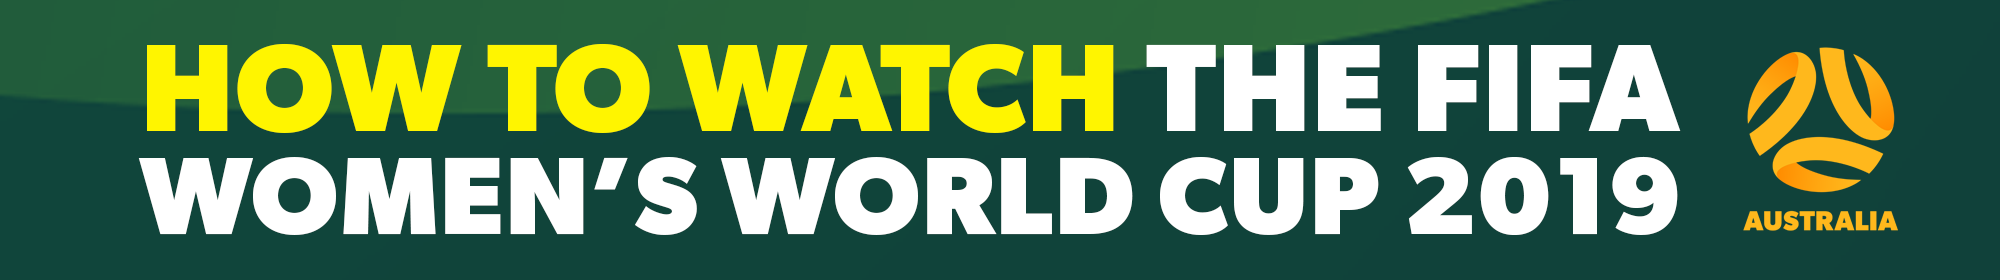 How to Watch the FIFA Women's World Cup 2019